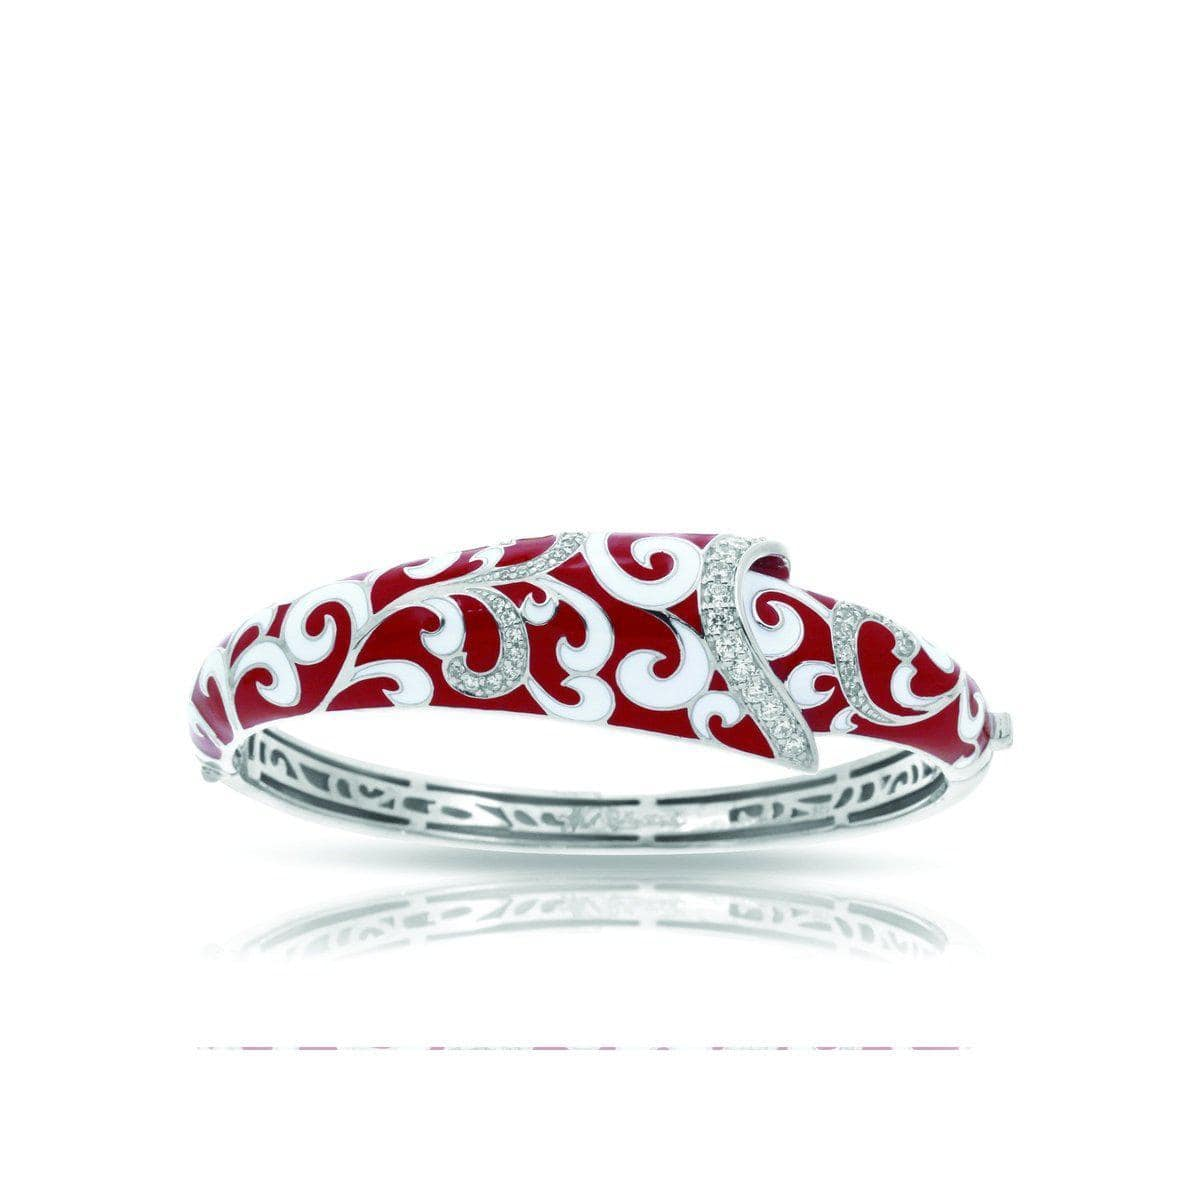 Contessa Red Bangle-Belle Etoile-Renee Taylor Gallery